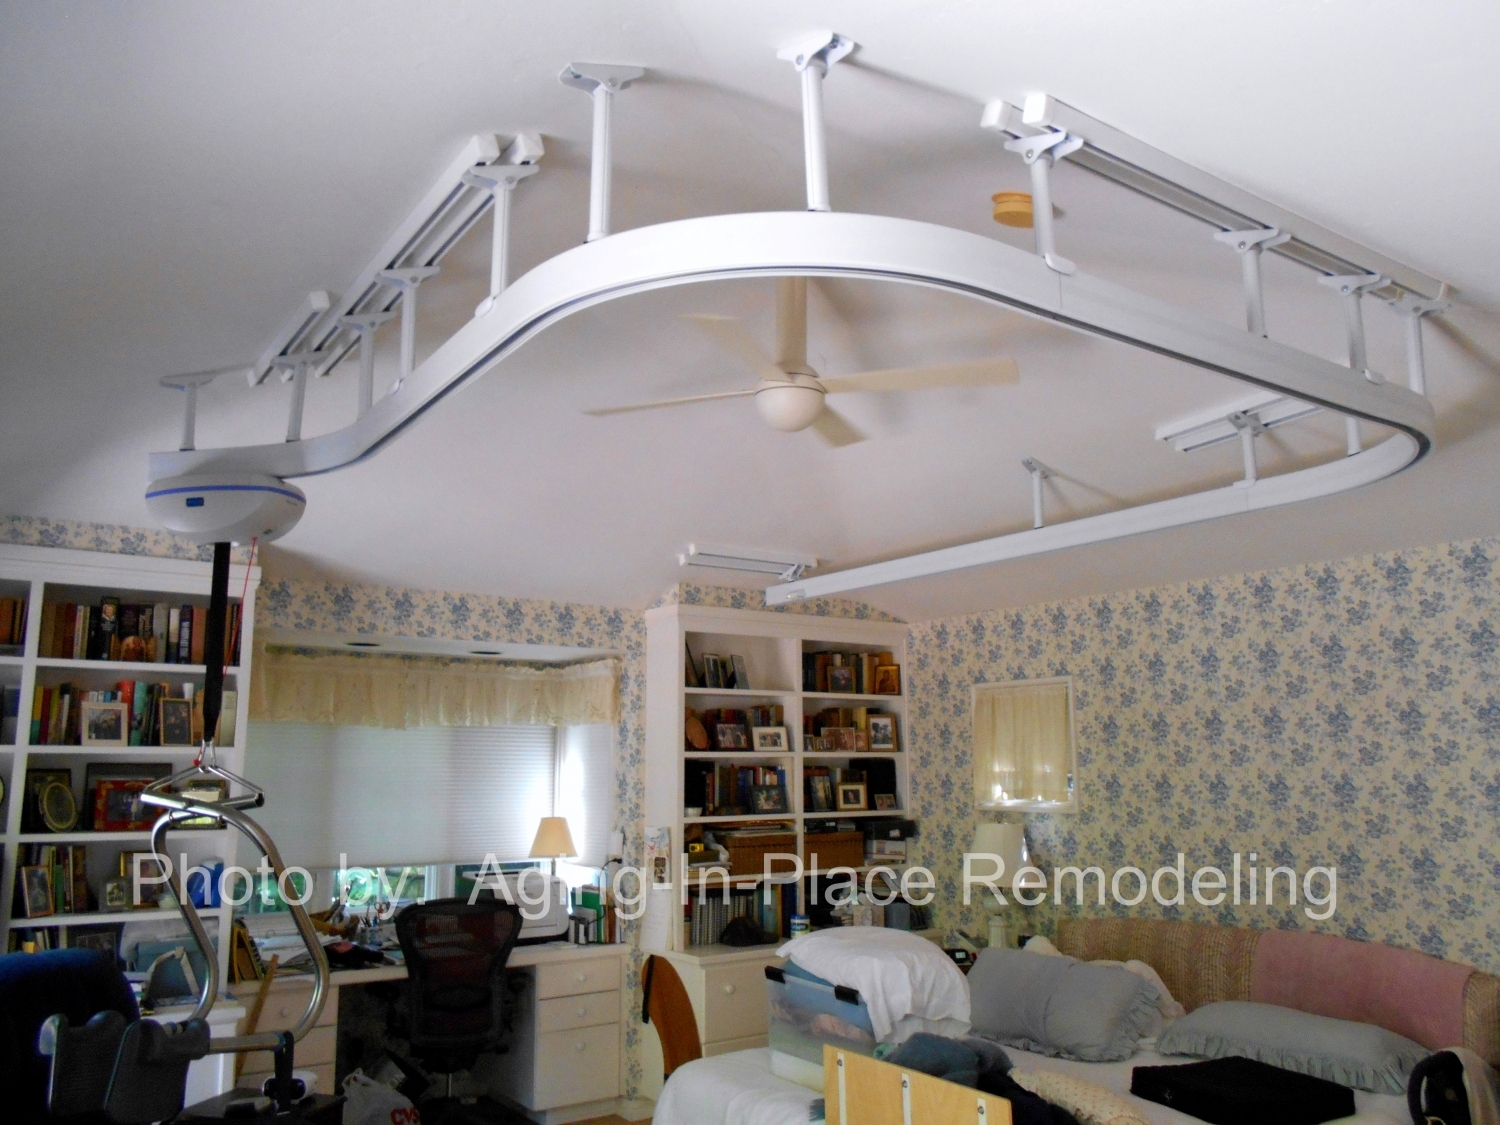 overhead tulum co lift ceilings patient ceiling smsender systems